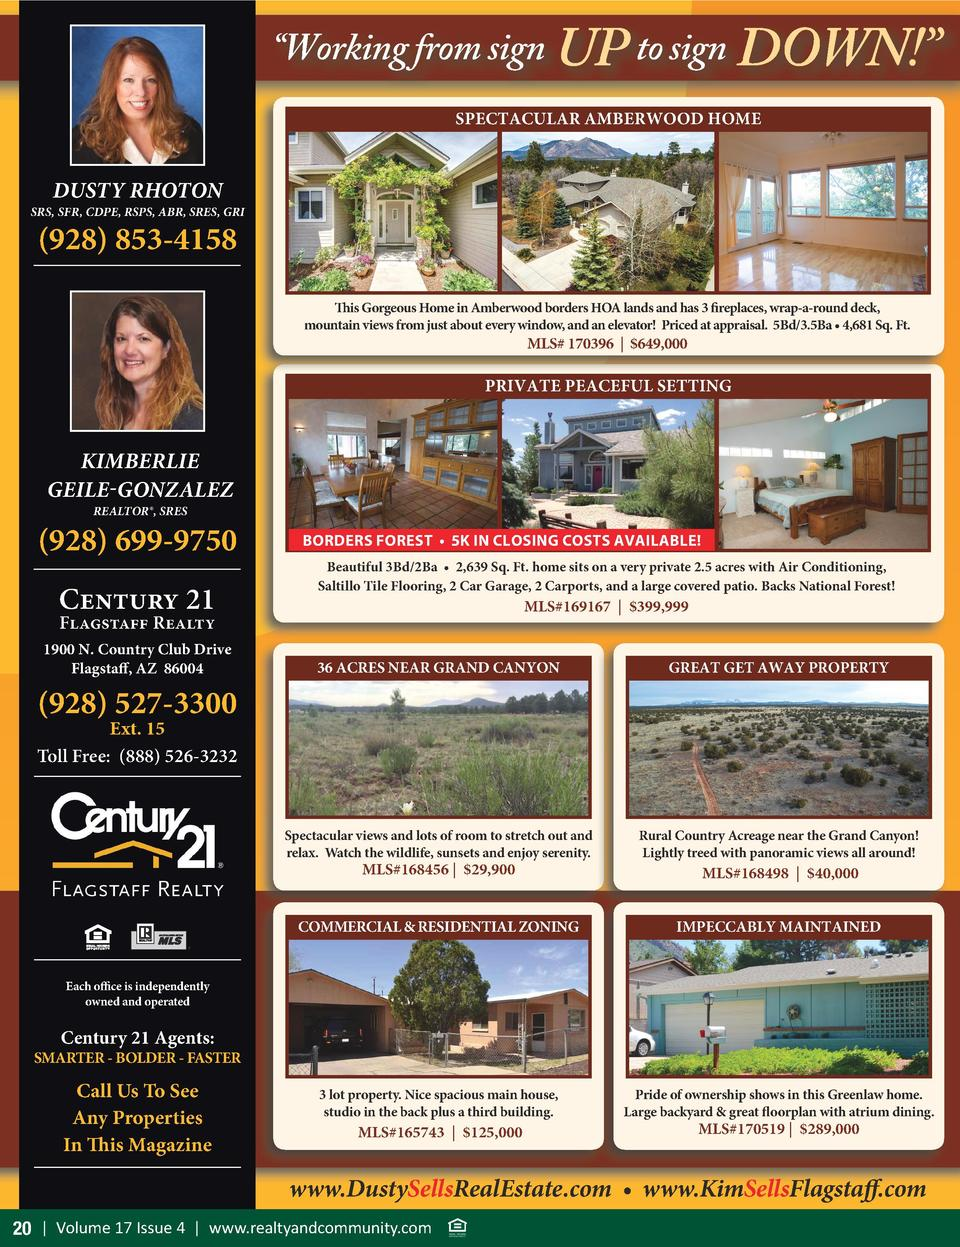 Working from sign UP to sign DOWN     SPECTACULAR AMBERWOOD HOME  DUSTY RHOTON  SRS, SFR, CDPE, RSPS, ABR, SRES, GRI   ...